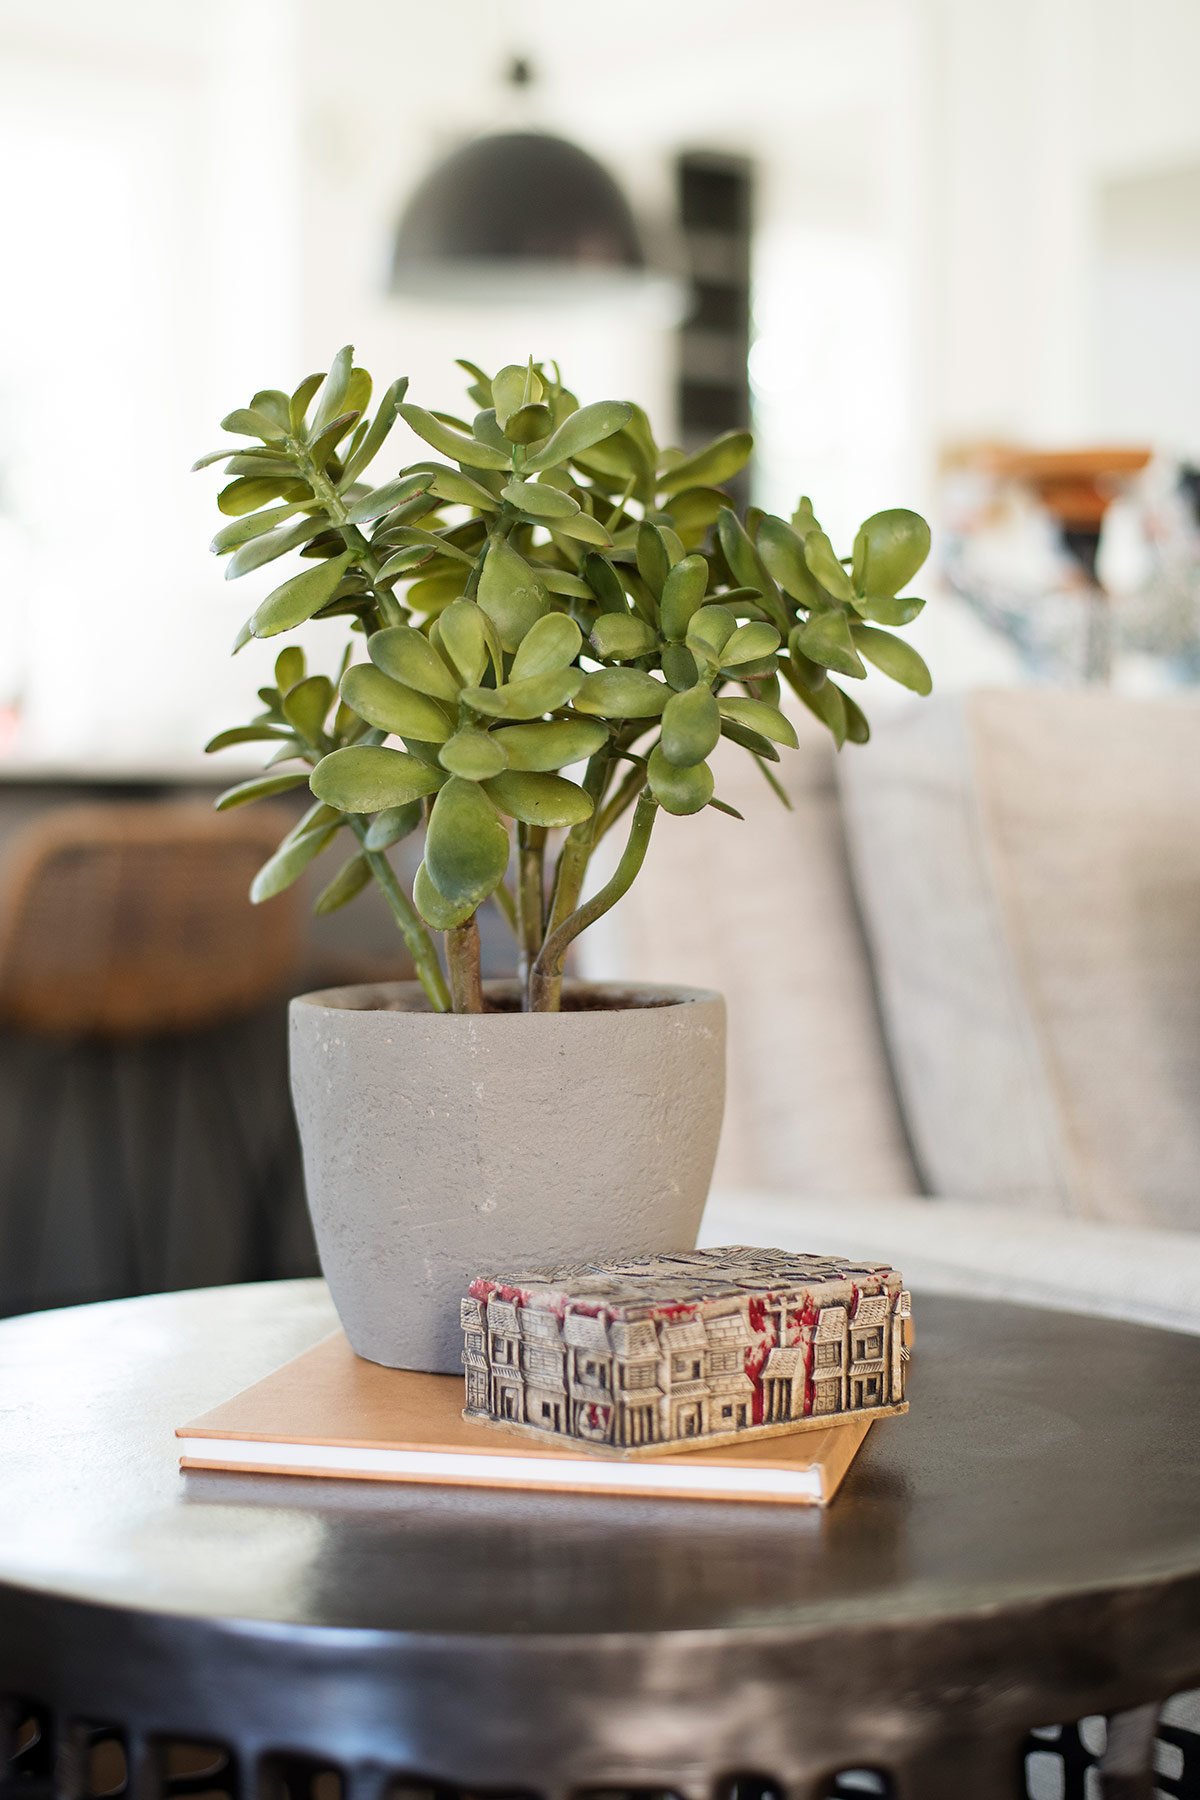 Side table with potted plant and books